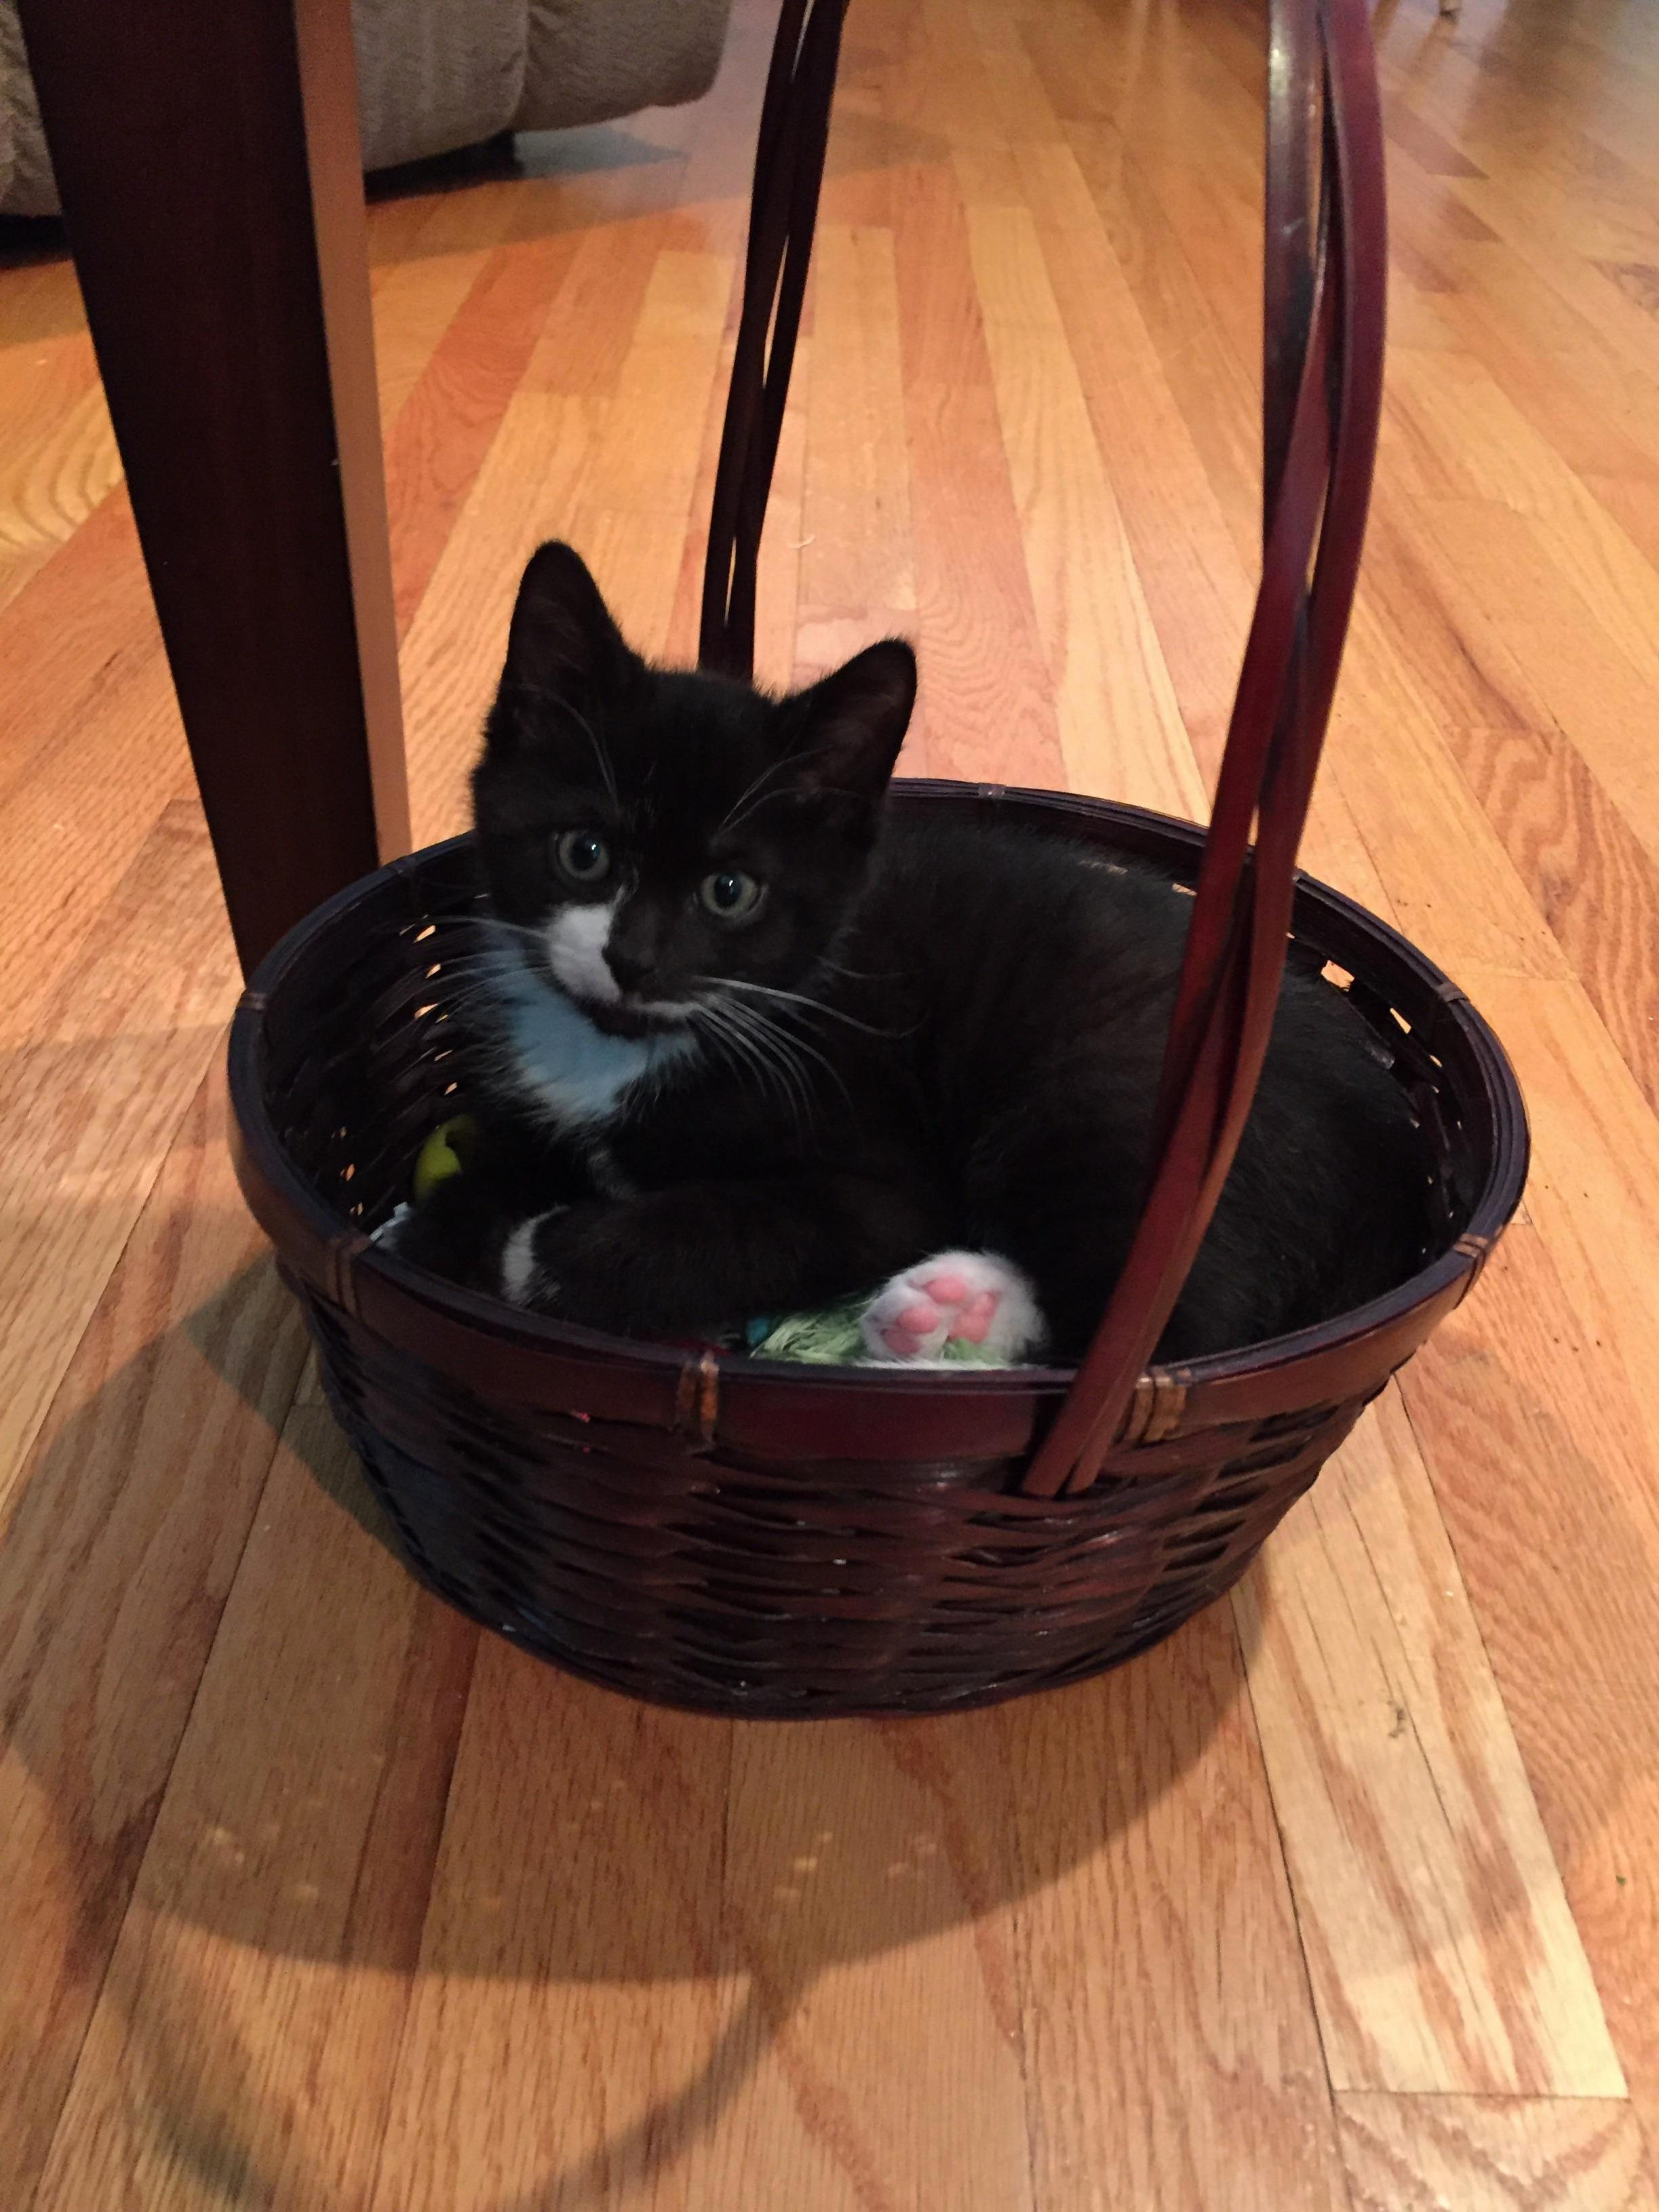 Little silvio thinks the toy basket is his bed